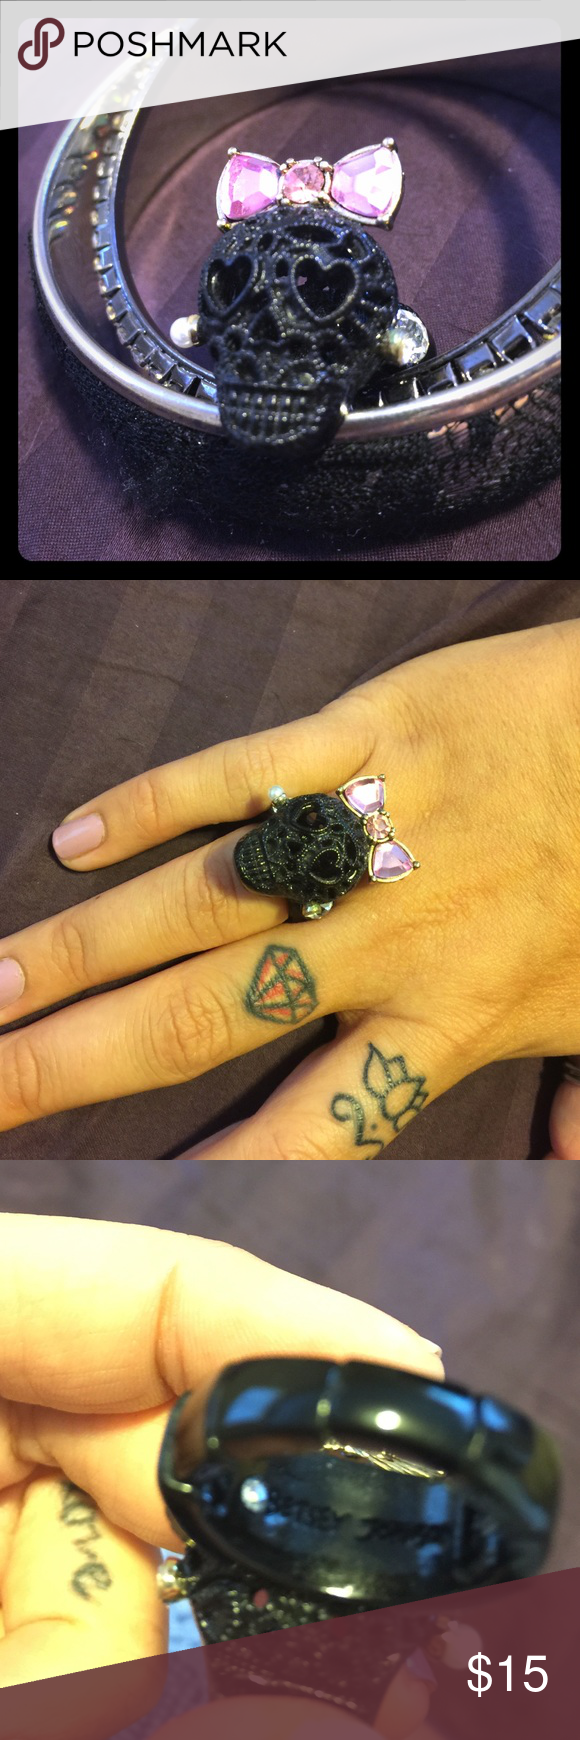 💖Betsey Johnson skull ring💀 Bada$$ Betsey Johnson skull ring. Like new! No wear or tear. It has a stretchy band so it can fit most fingers. It's a great statement piece and people take notice of it!😊 Betsey Johnson Jewelry Rings